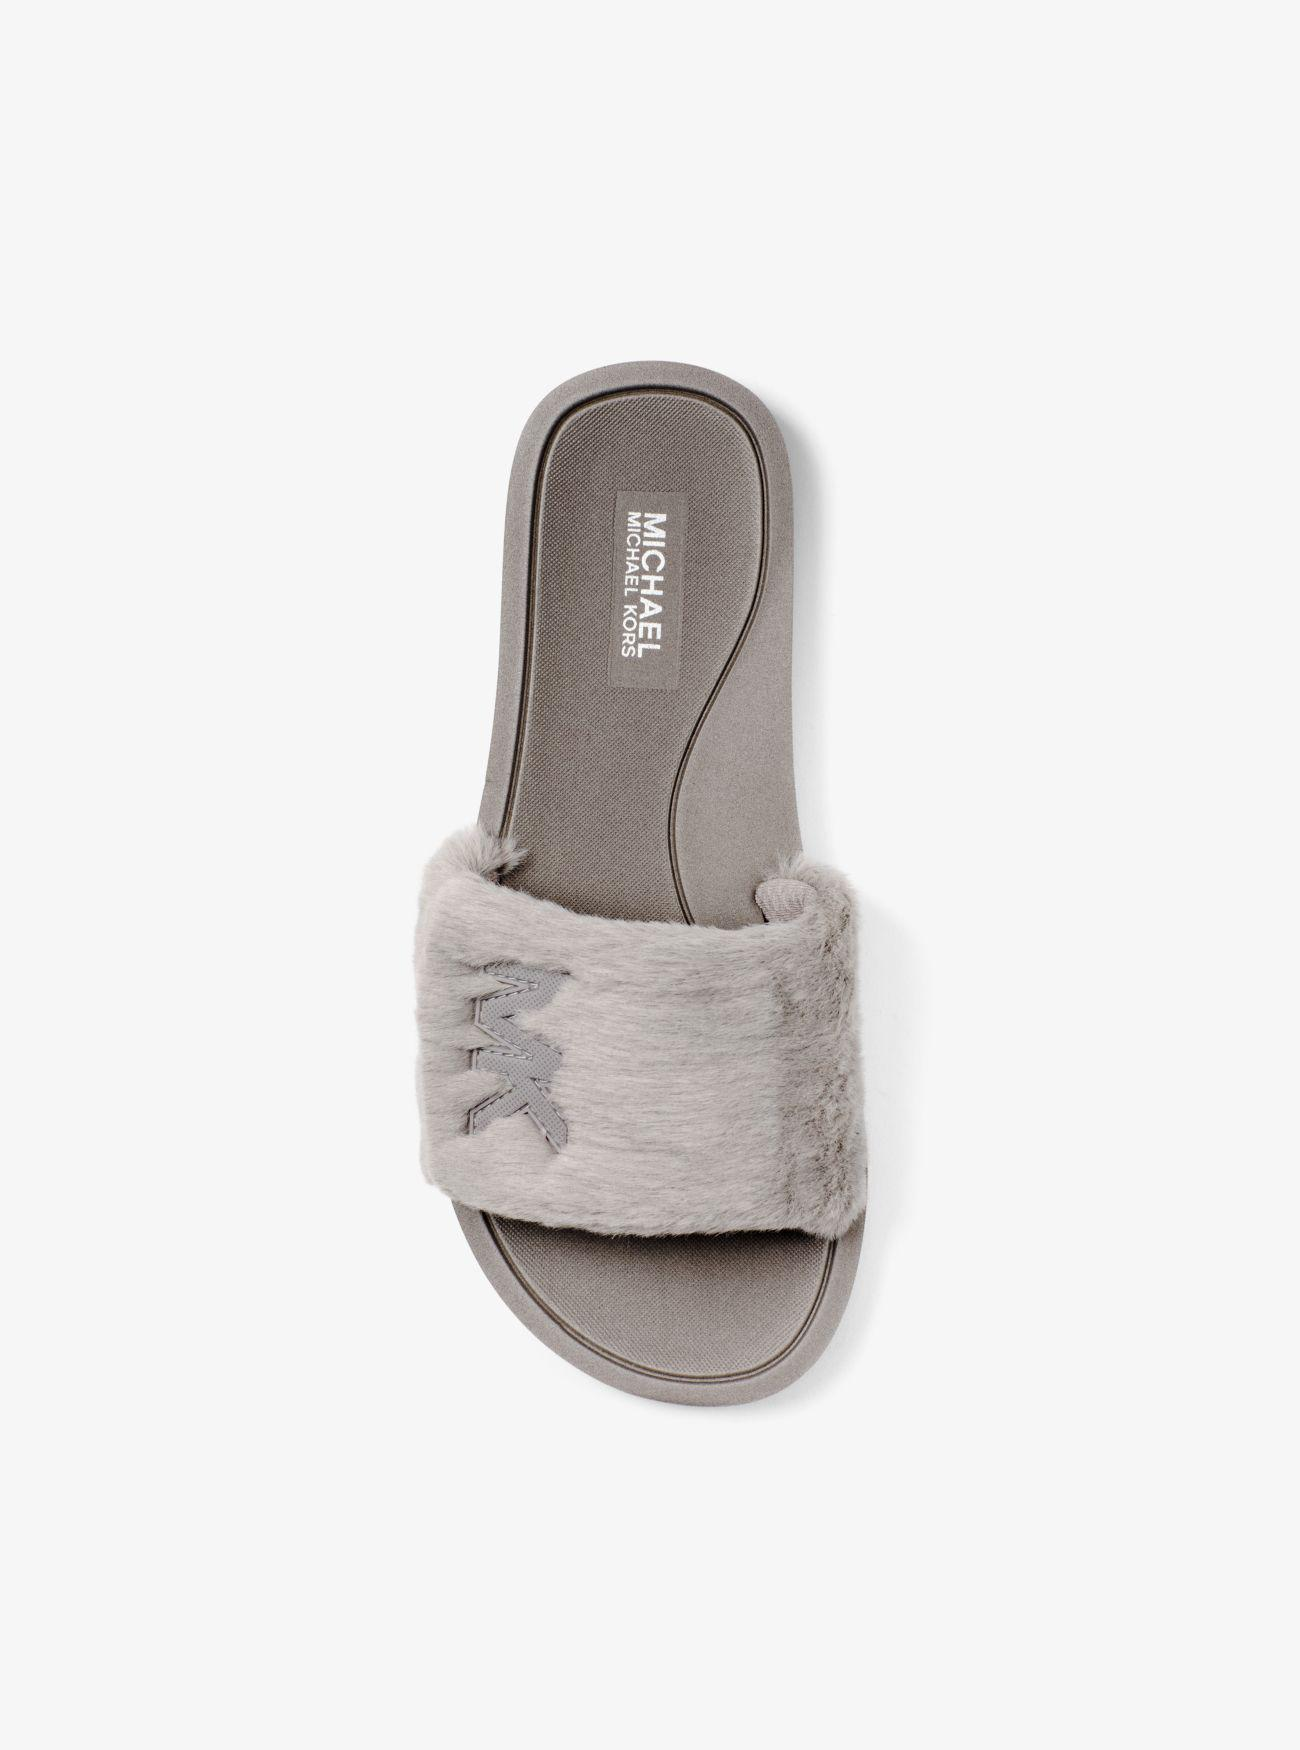 5730bf6a16fc Lyst - Michael Kors Logo Faux Fur Slide in Gray